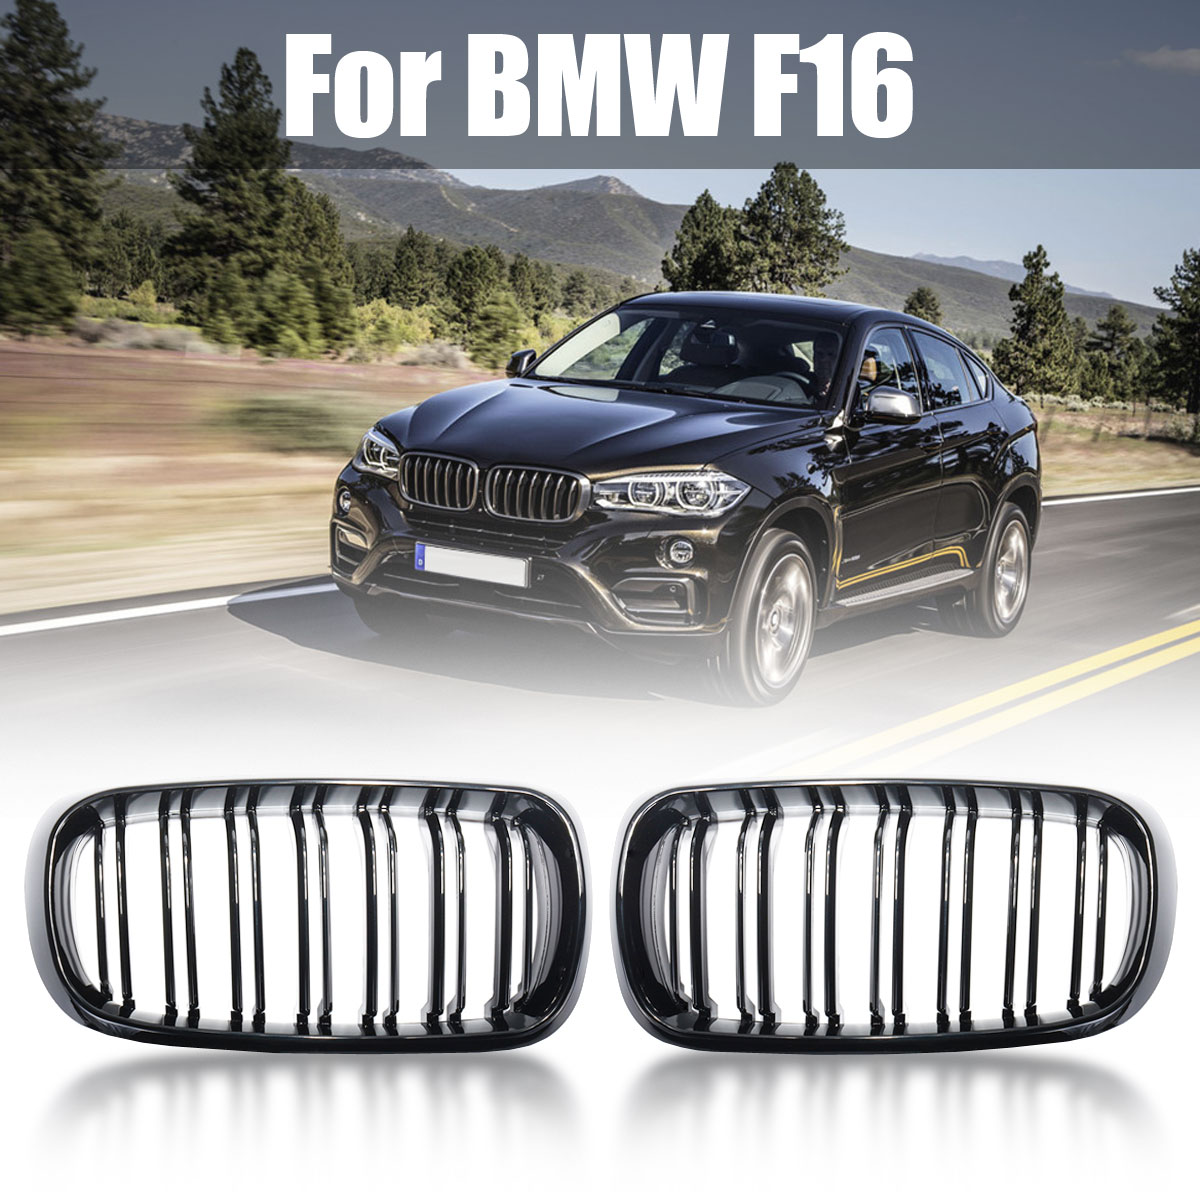 1 Pair New ABS Replacement Gloss/Matte Black 2 Double Slat Line Front Kidney Sport Grill Grille For BMW F15 F16 X5 X6 2014-2018 pair gloss matt black m color 2 line front kidney grille grill double slat for bmw e90 e91 3 series 2004 2005 2006 2007